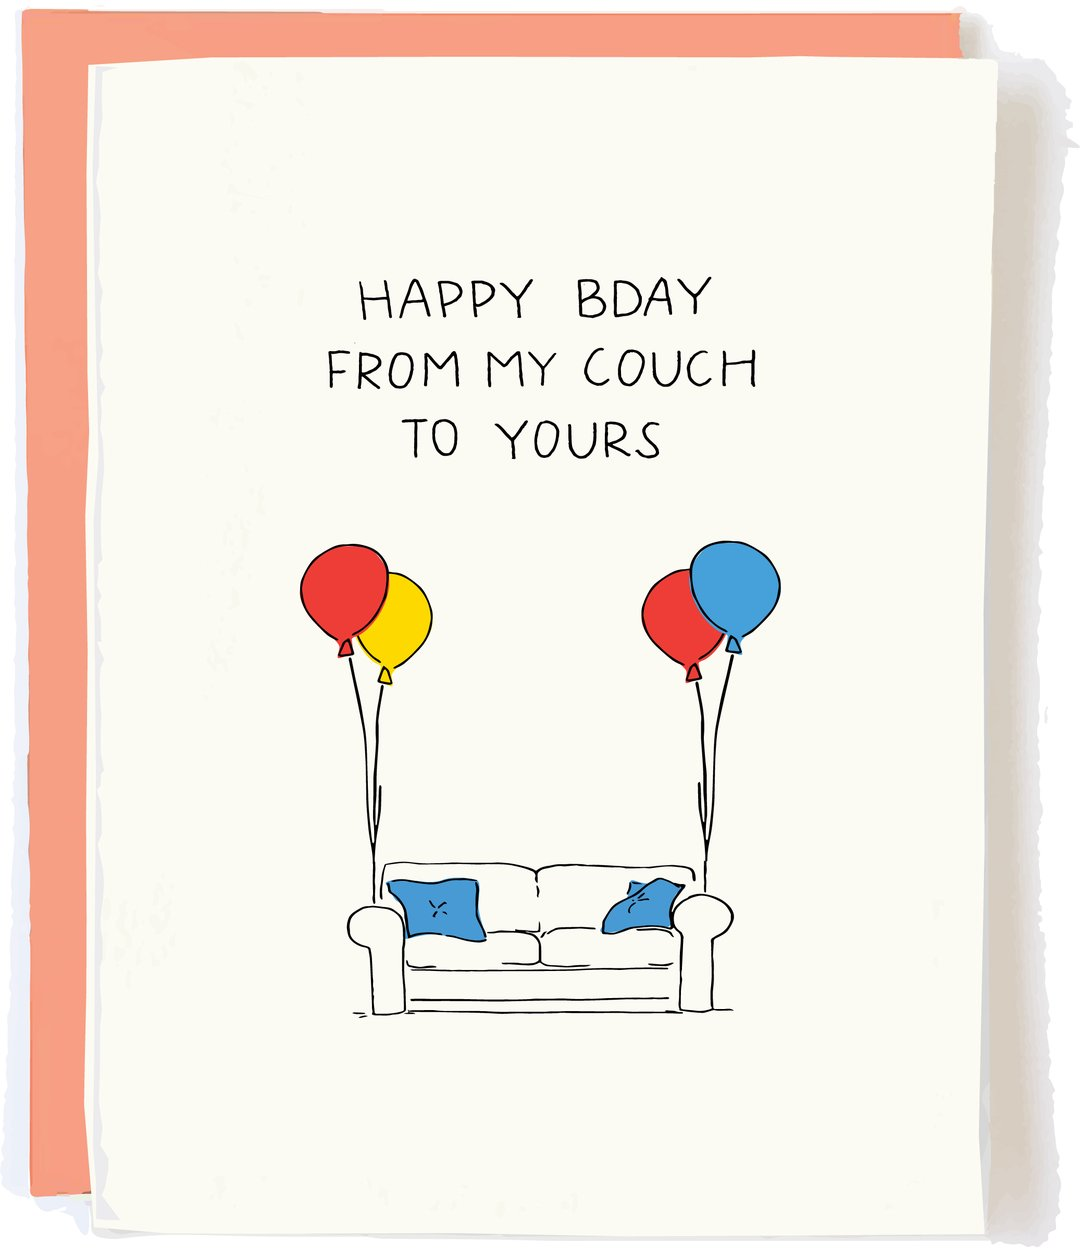 my couch to yours card